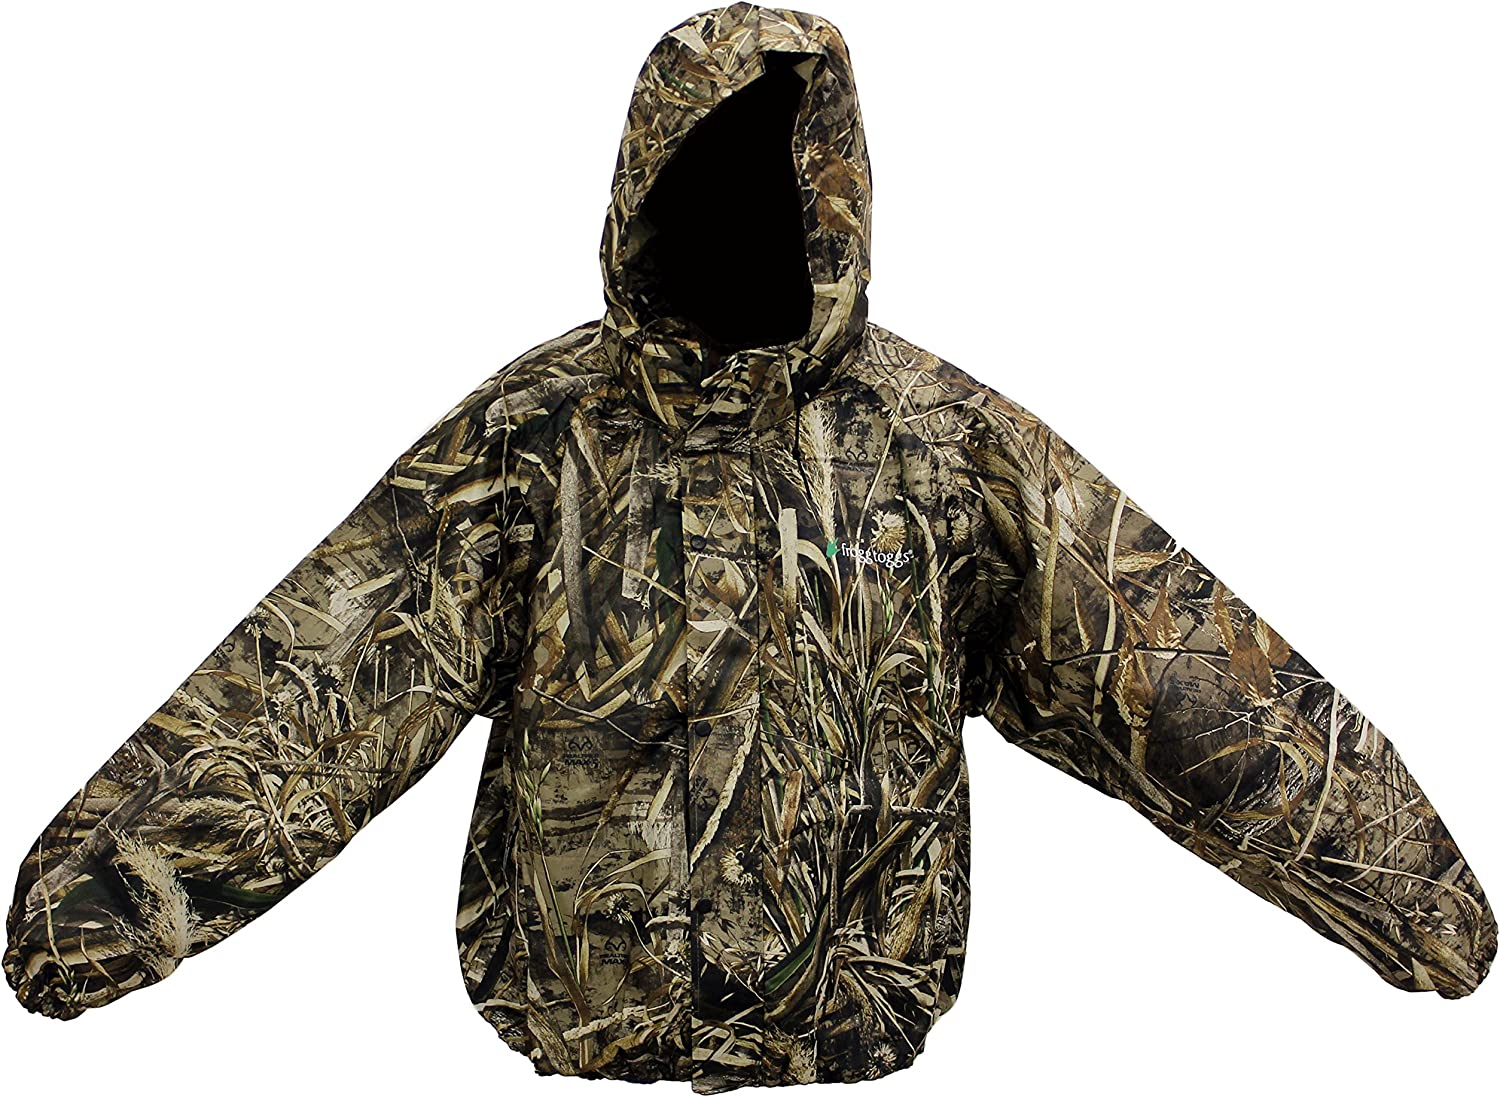 FROGG TOGGS RAIN GEAR-PA63102-56 PRO ACTION REALTREE MAX-5 CAMO JACKET HUNTING